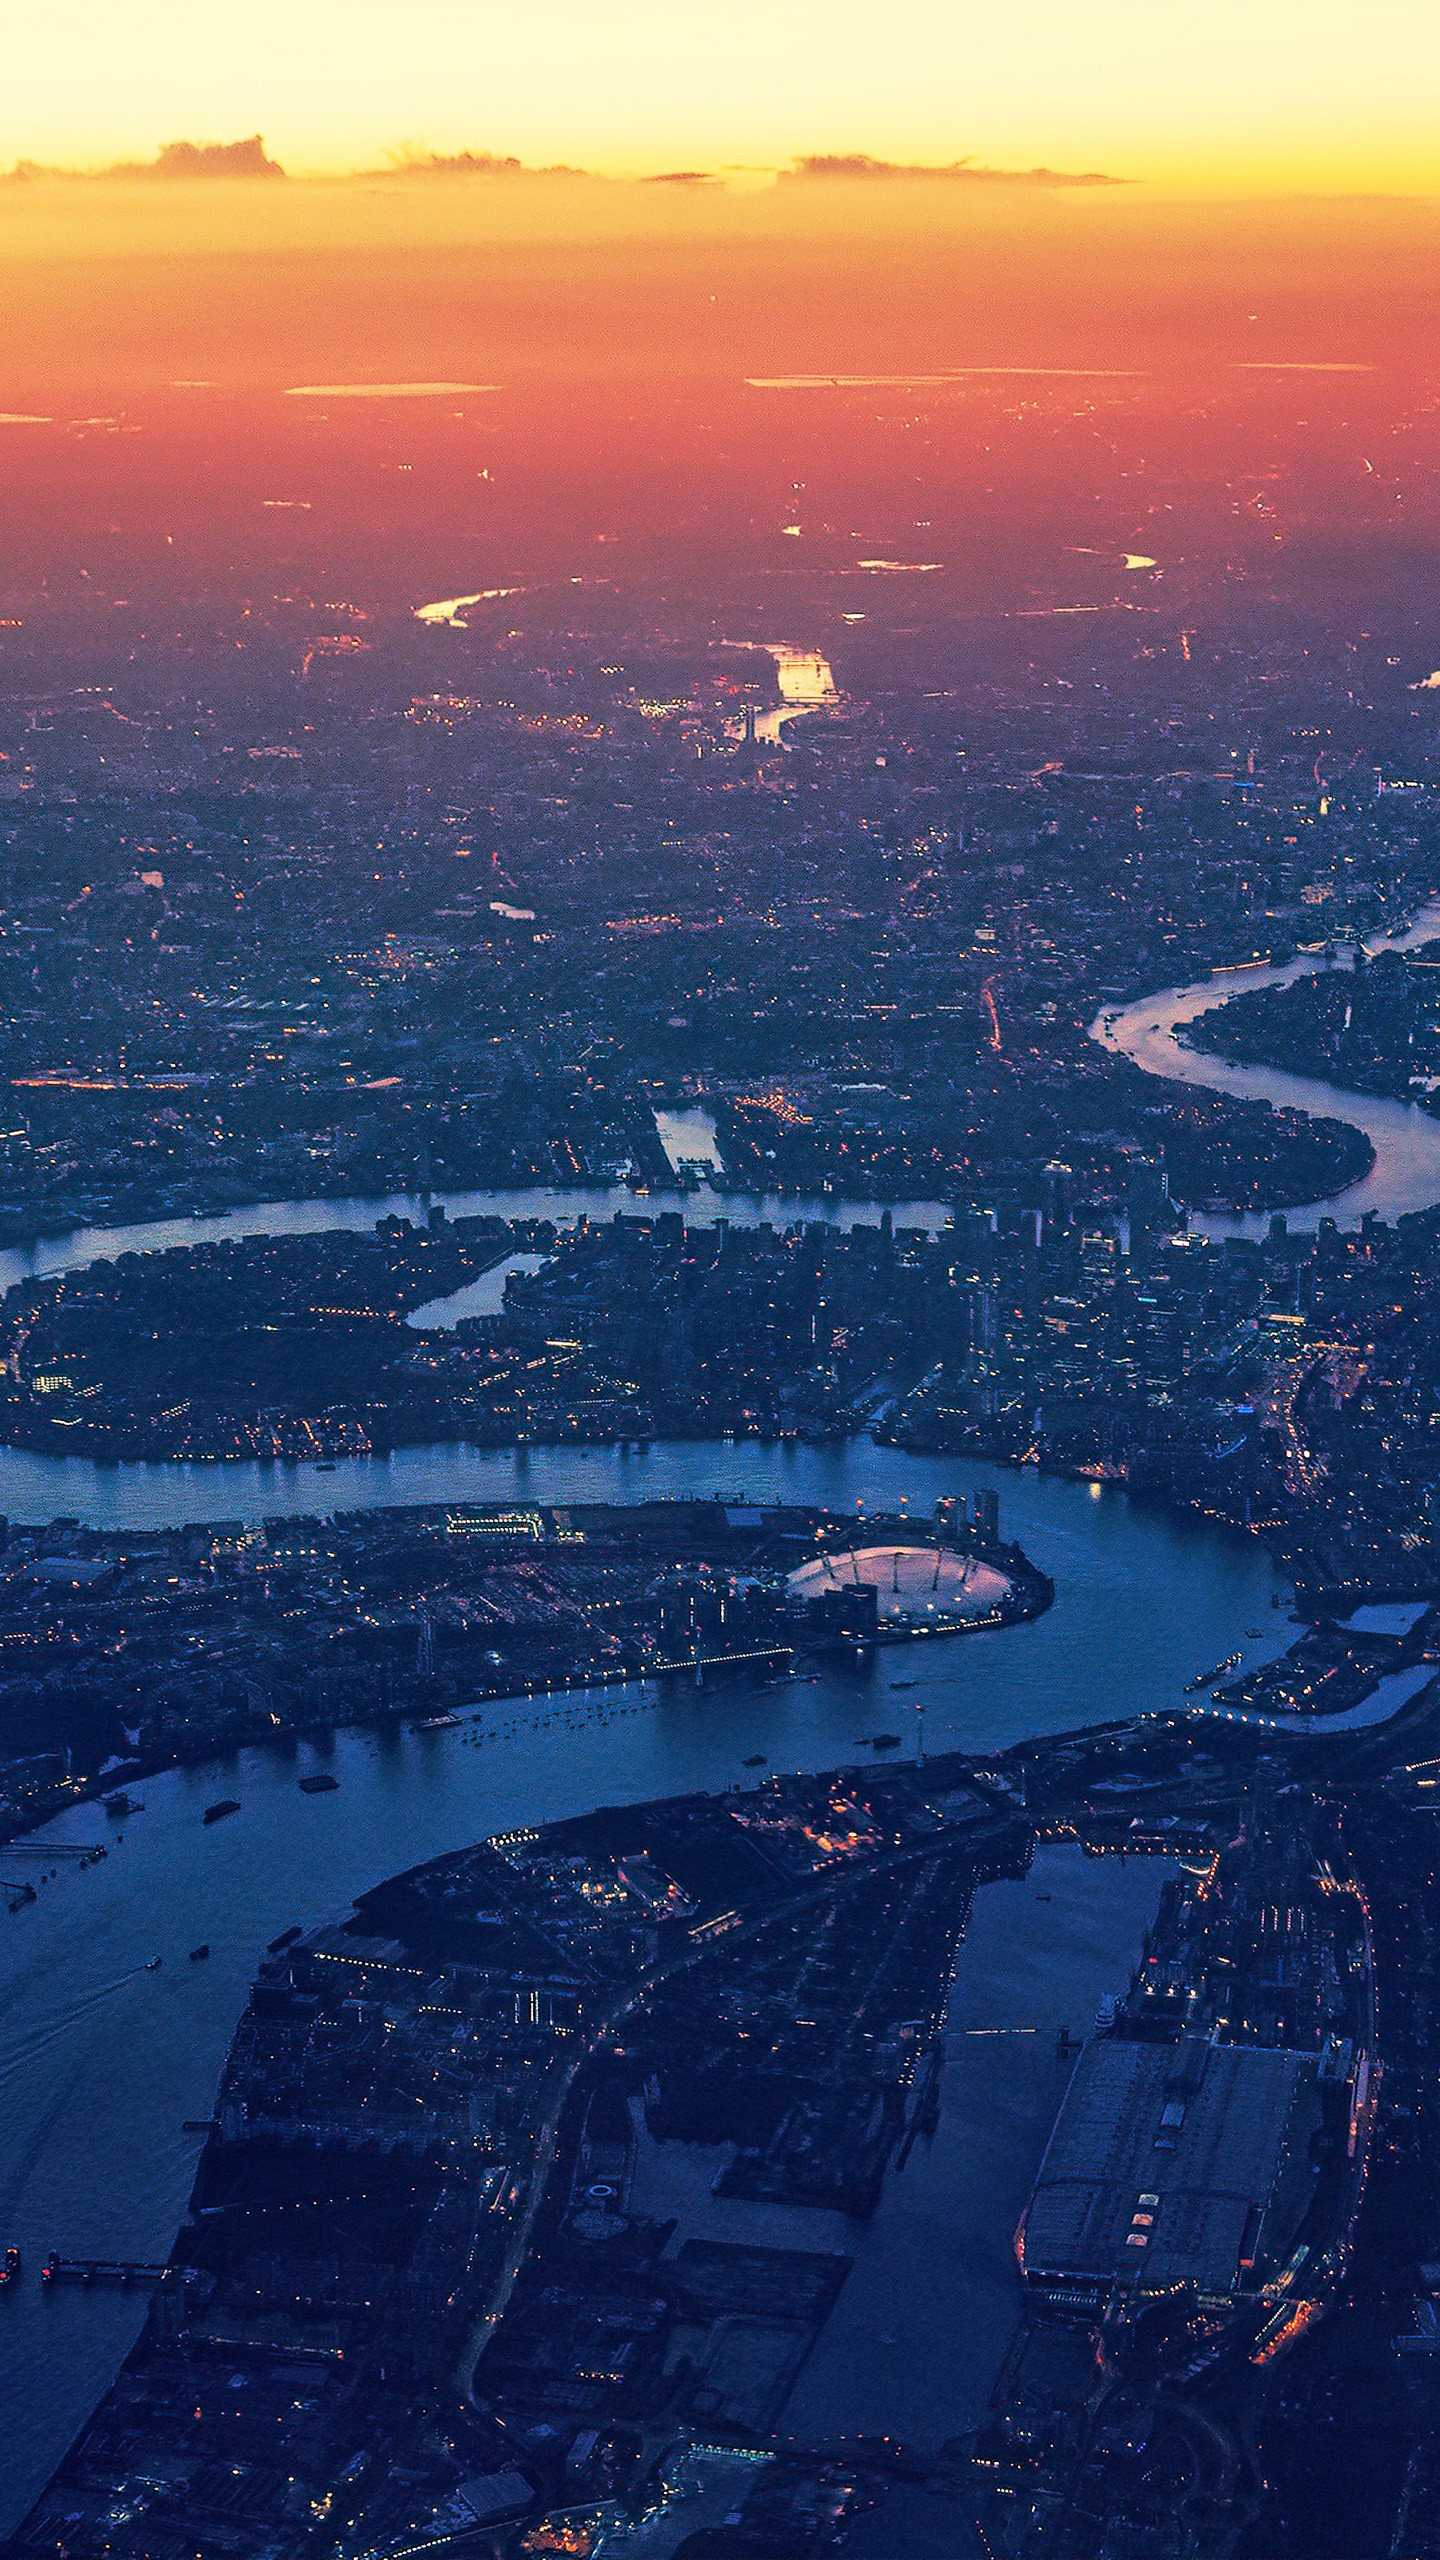 Wallpaper 3d Iphone X London Cityscape 4k 5k Wallpapers Hd Wallpapers Id 27258